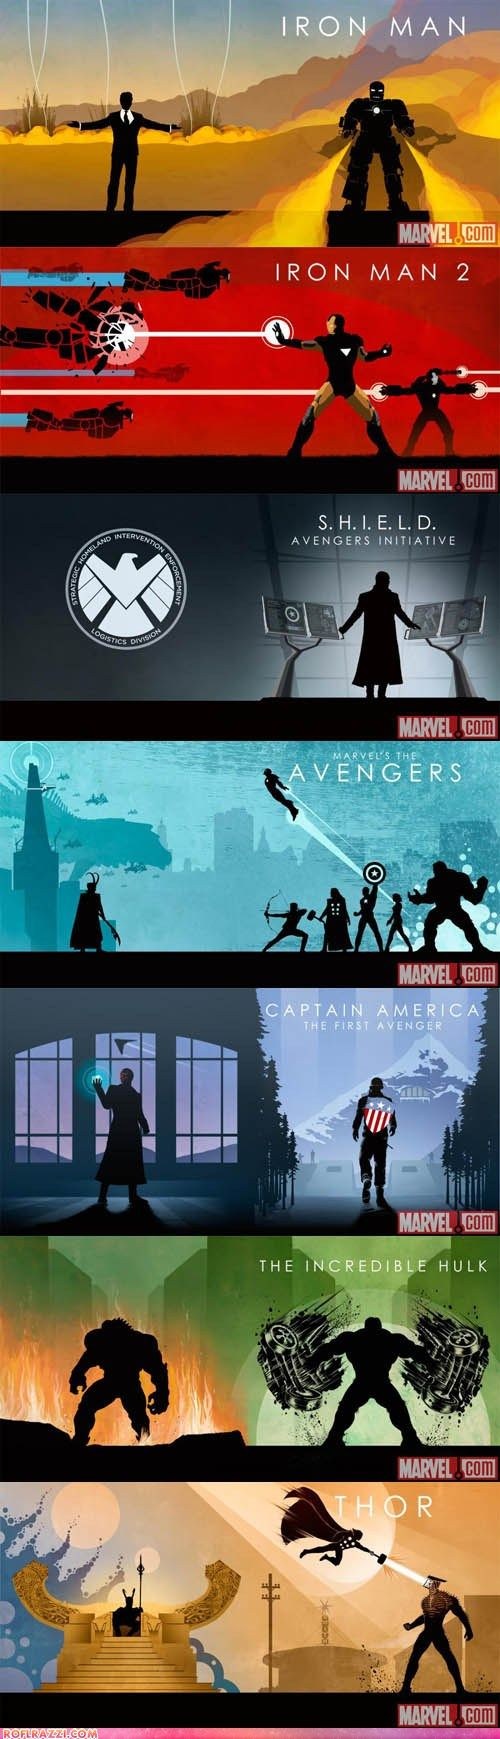 Marvel Cinematic Universe Box Collection Sleeve Art